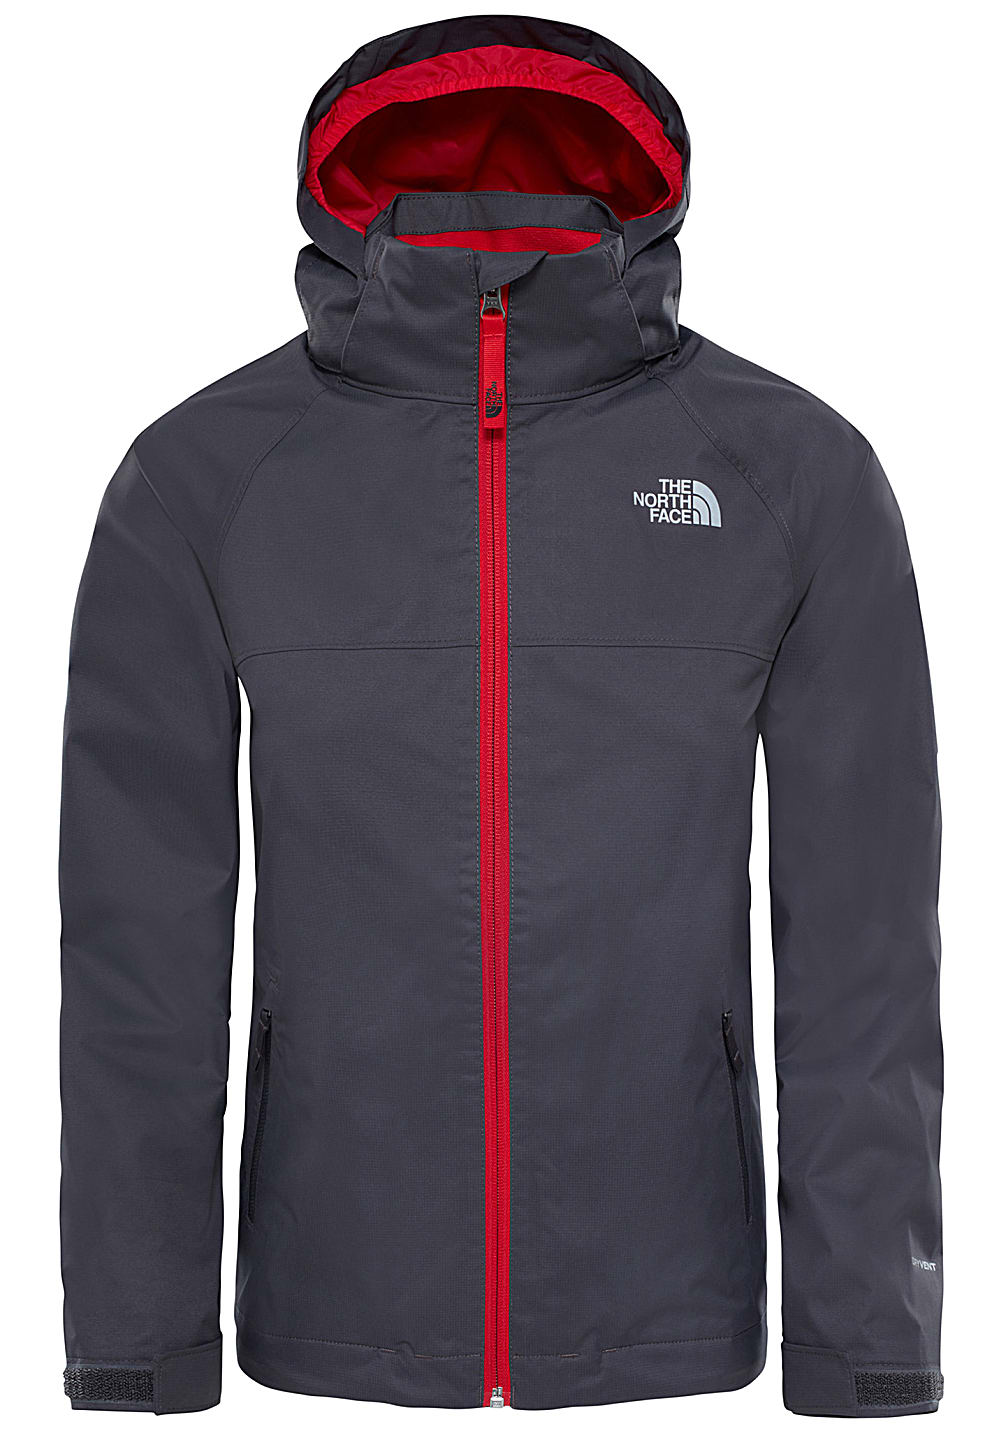 THE NORTH FACE Stormy Day - Outdoorjacke für Jungs Grau